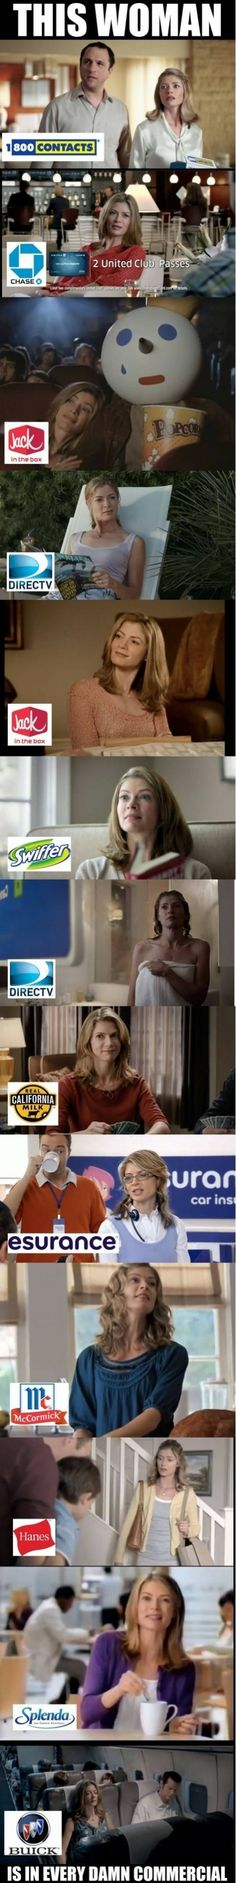 I'm looking for her during superbowl ads.